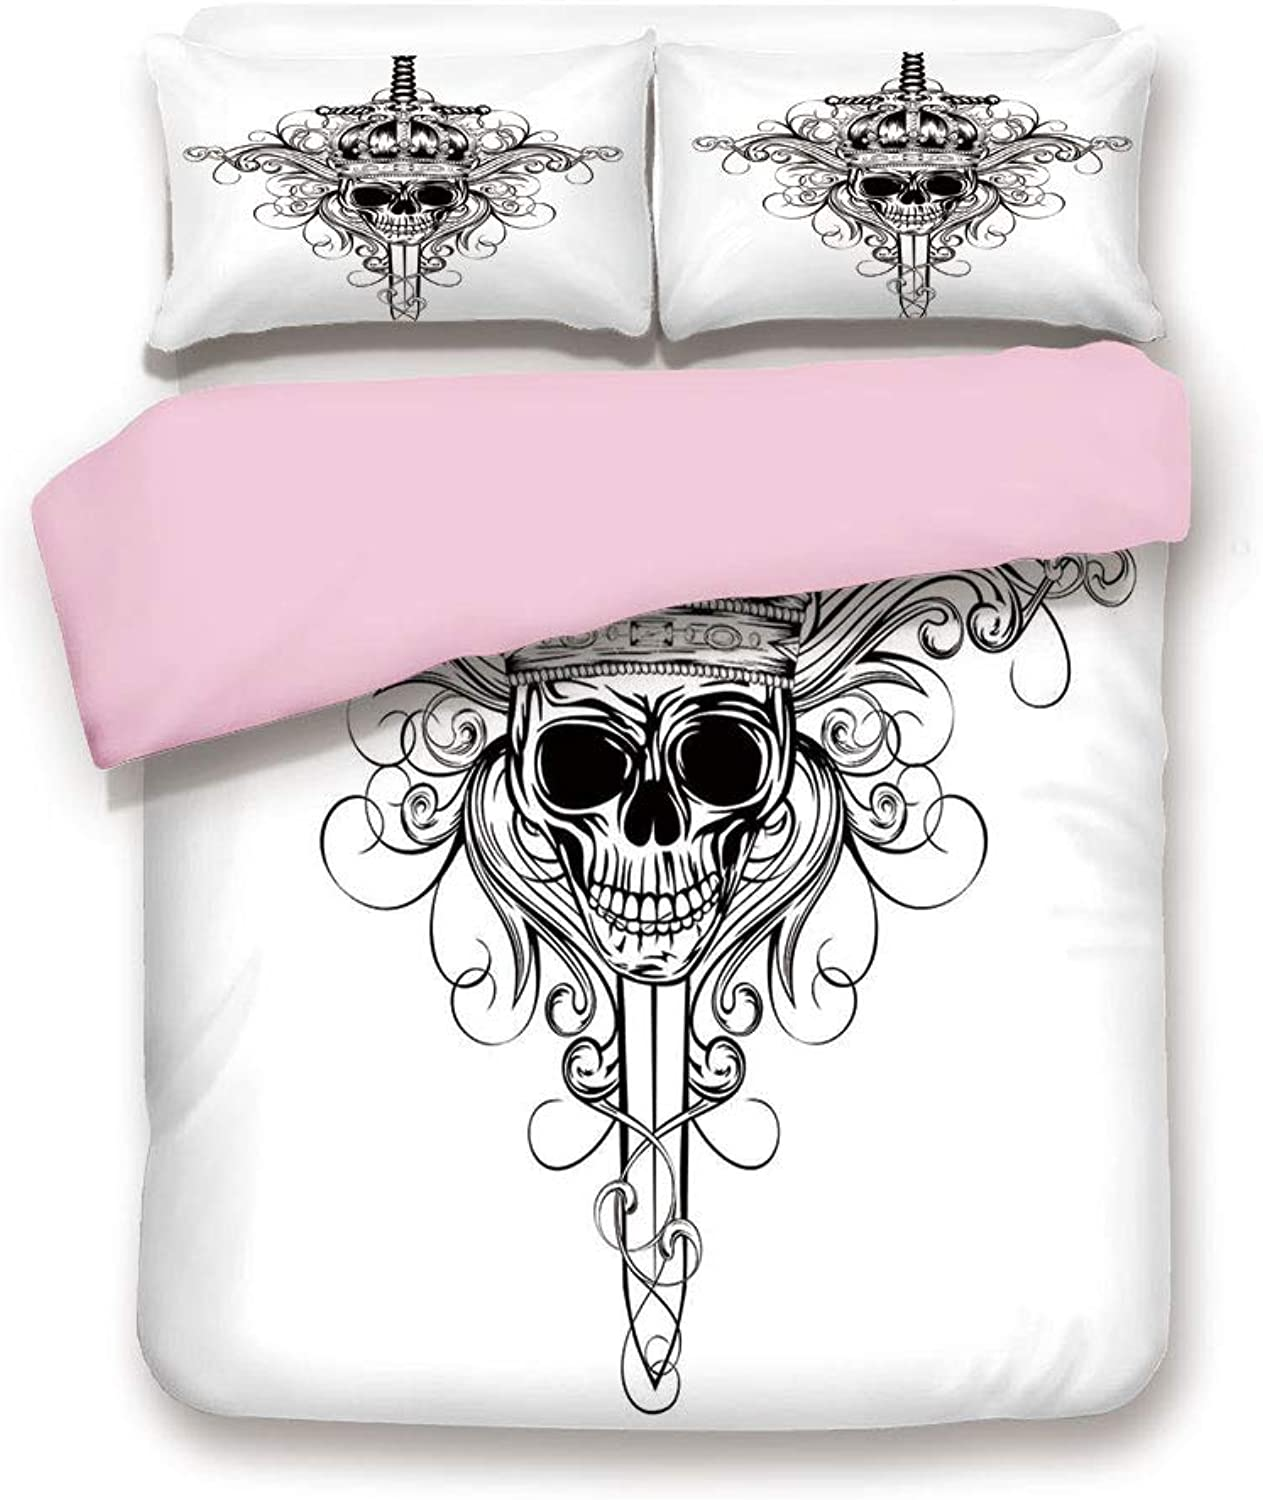 Pink Duvet Cover Set,Twin Size,Skull in Crown and Crossed Swords Patterns King Warrior Historic Illustration,Decorative 3 Piece Bedding Set with 2 Pillow Sham,Best Gift For Girls Women,Black and White